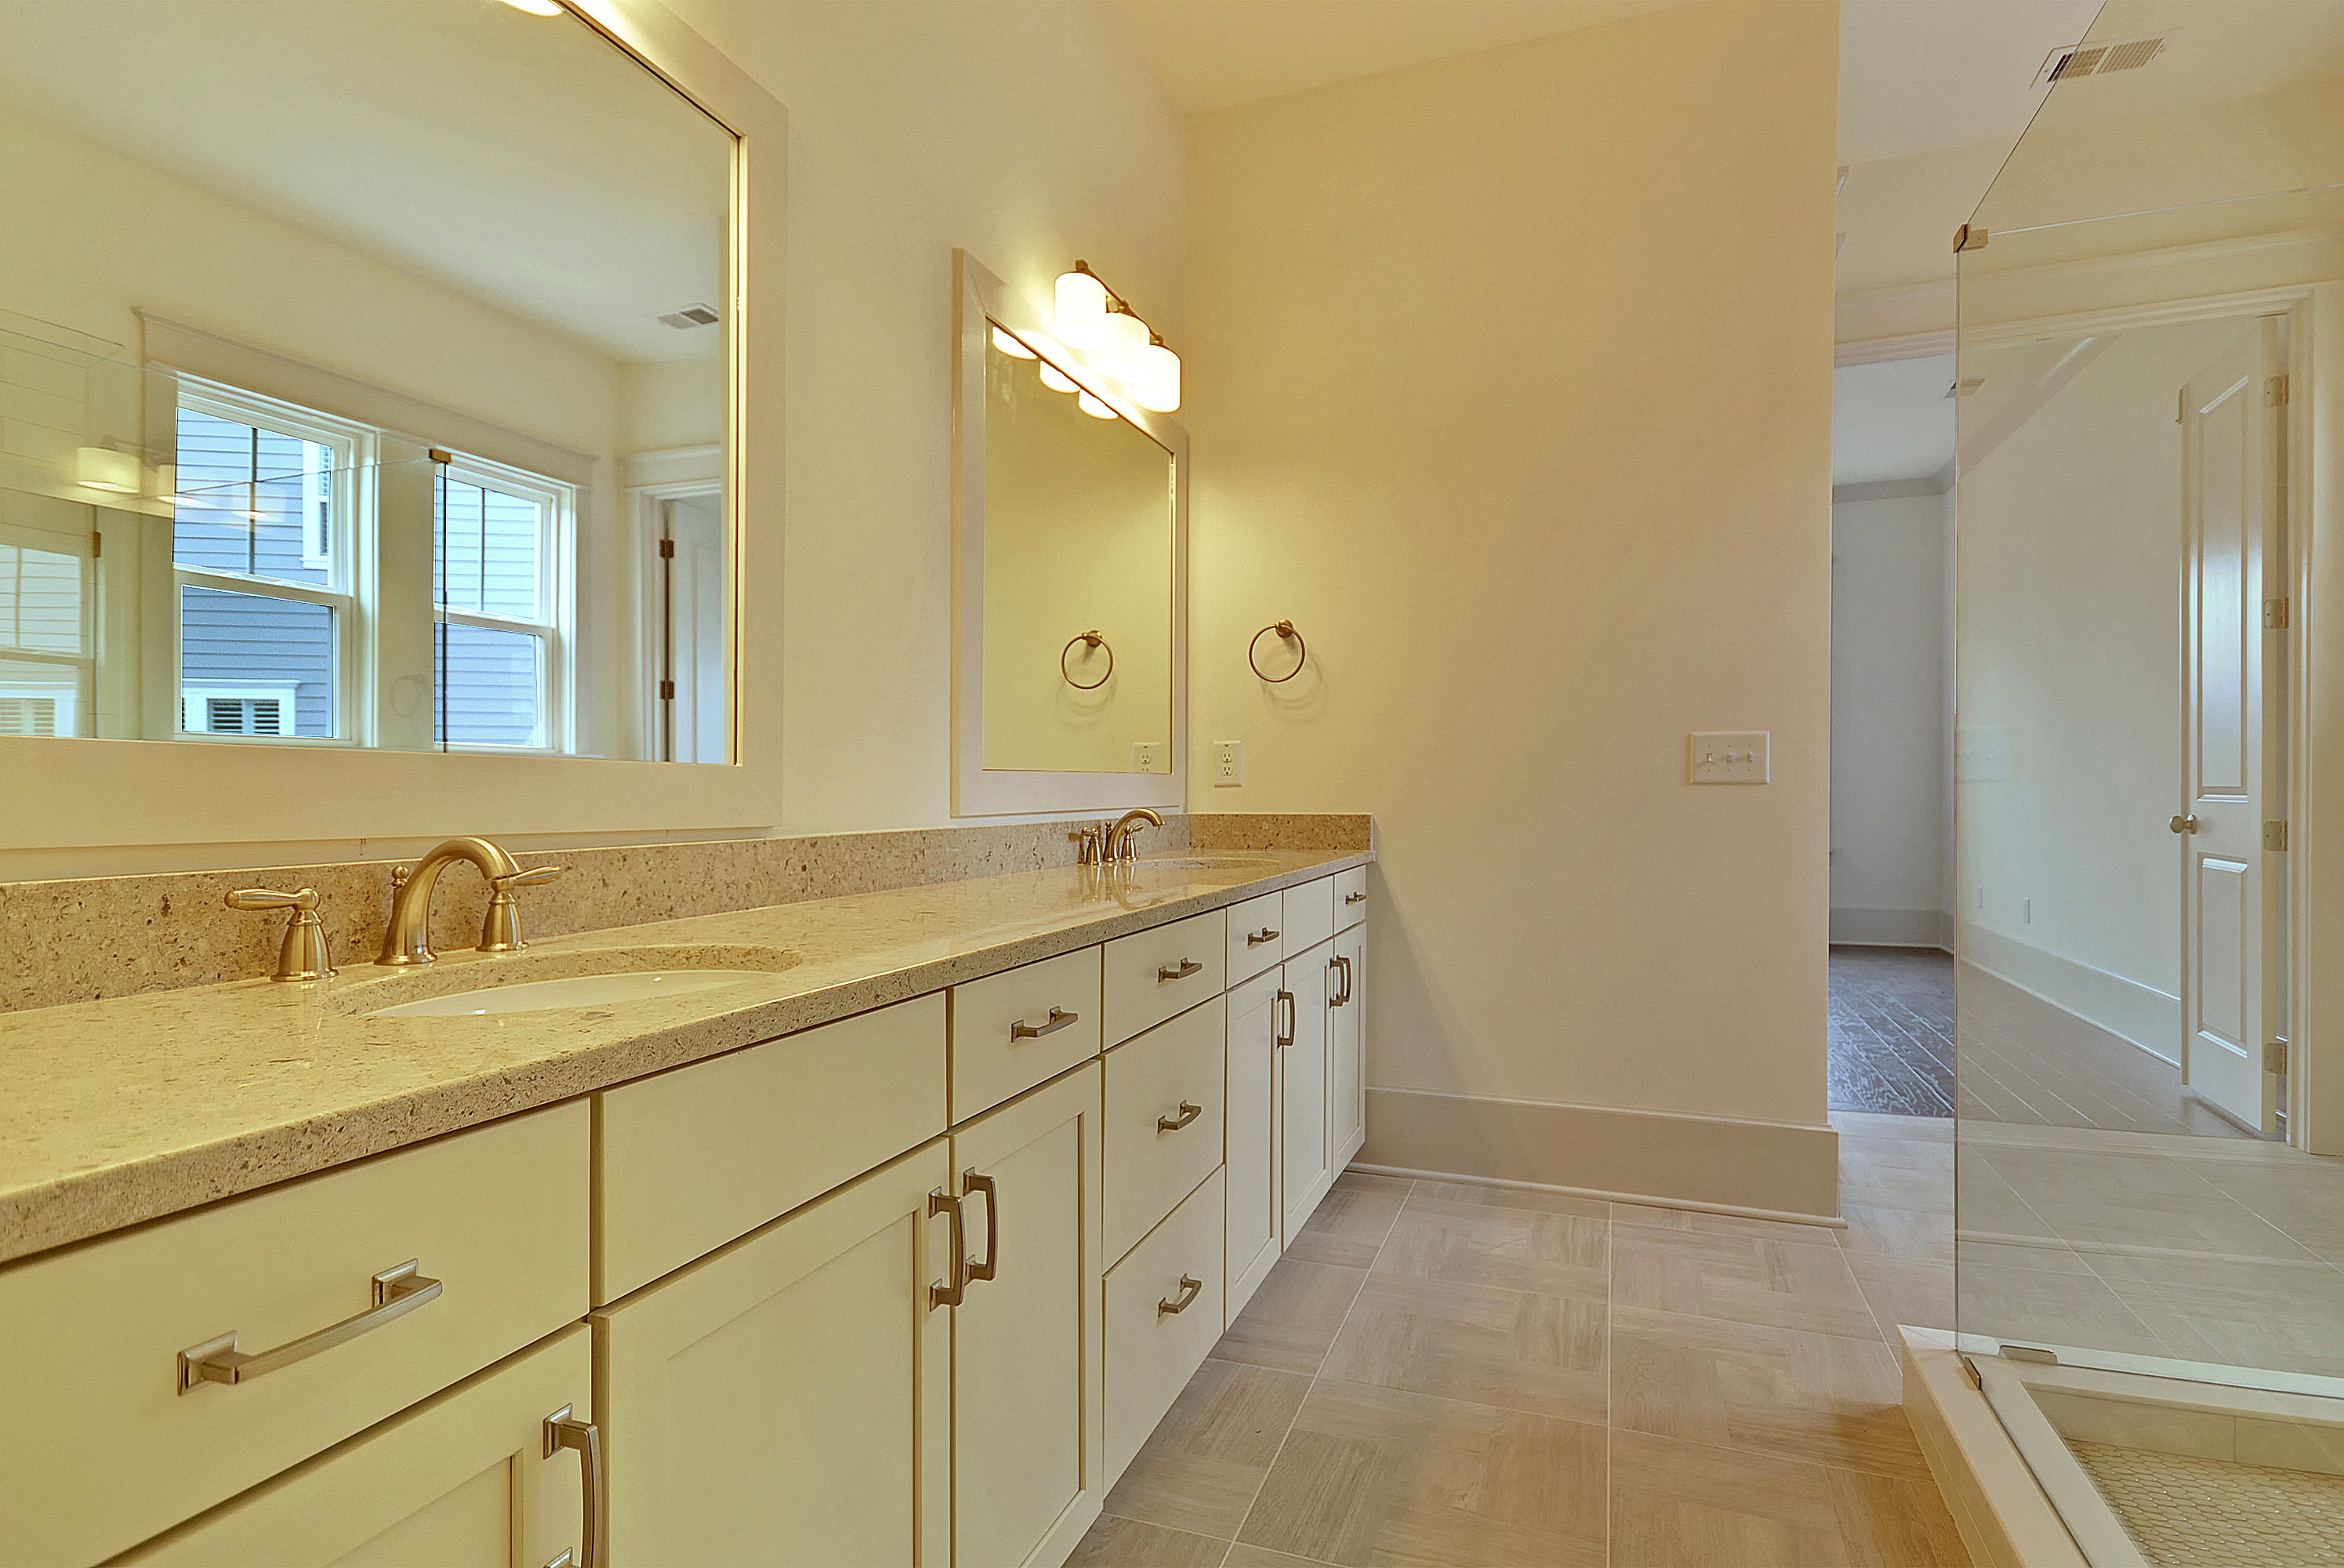 Stratton by the Sound Homes For Sale - 1440 Stratton Place, Mount Pleasant, SC - 1